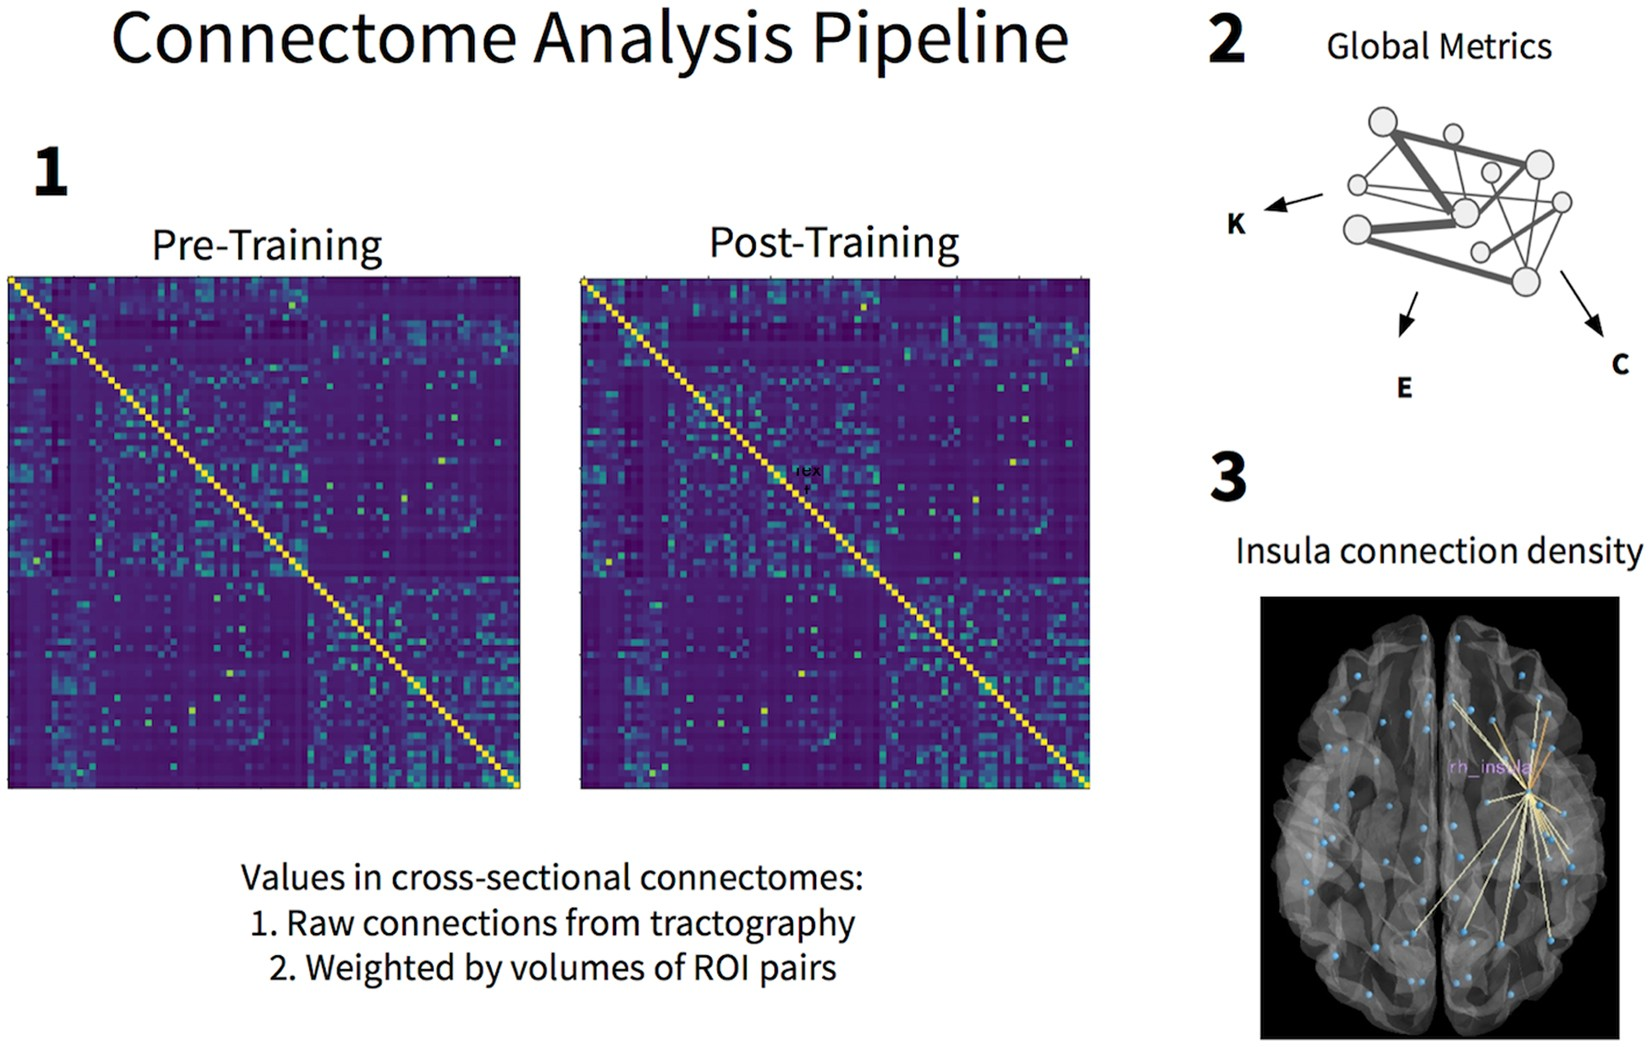 Mindfulness Training Induces Structural Connectome Changes In Insula Rj 48c T1 Wiring Diagram Networks Scientific Reports